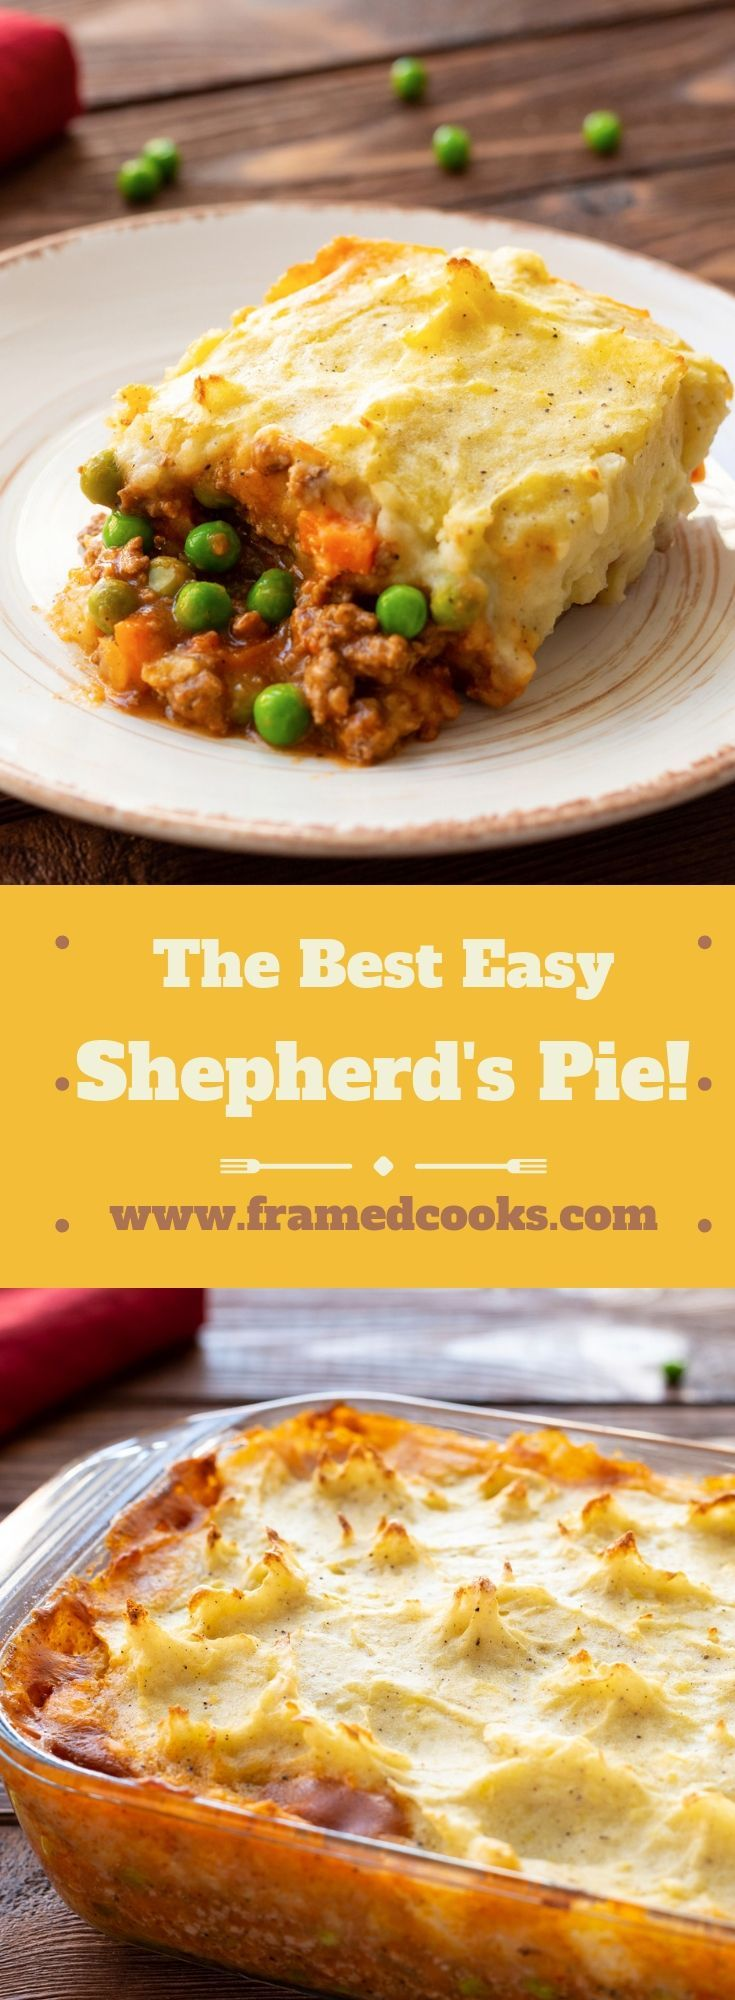 Pie This easy recipe for shepherd's pie just might be the best comfort food EVER. Warm and wonderful and just right for your supper table.This easy recipe for shepherd's pie just might be the best comfort food EVER. Warm and wonderful and just right for your supper table.